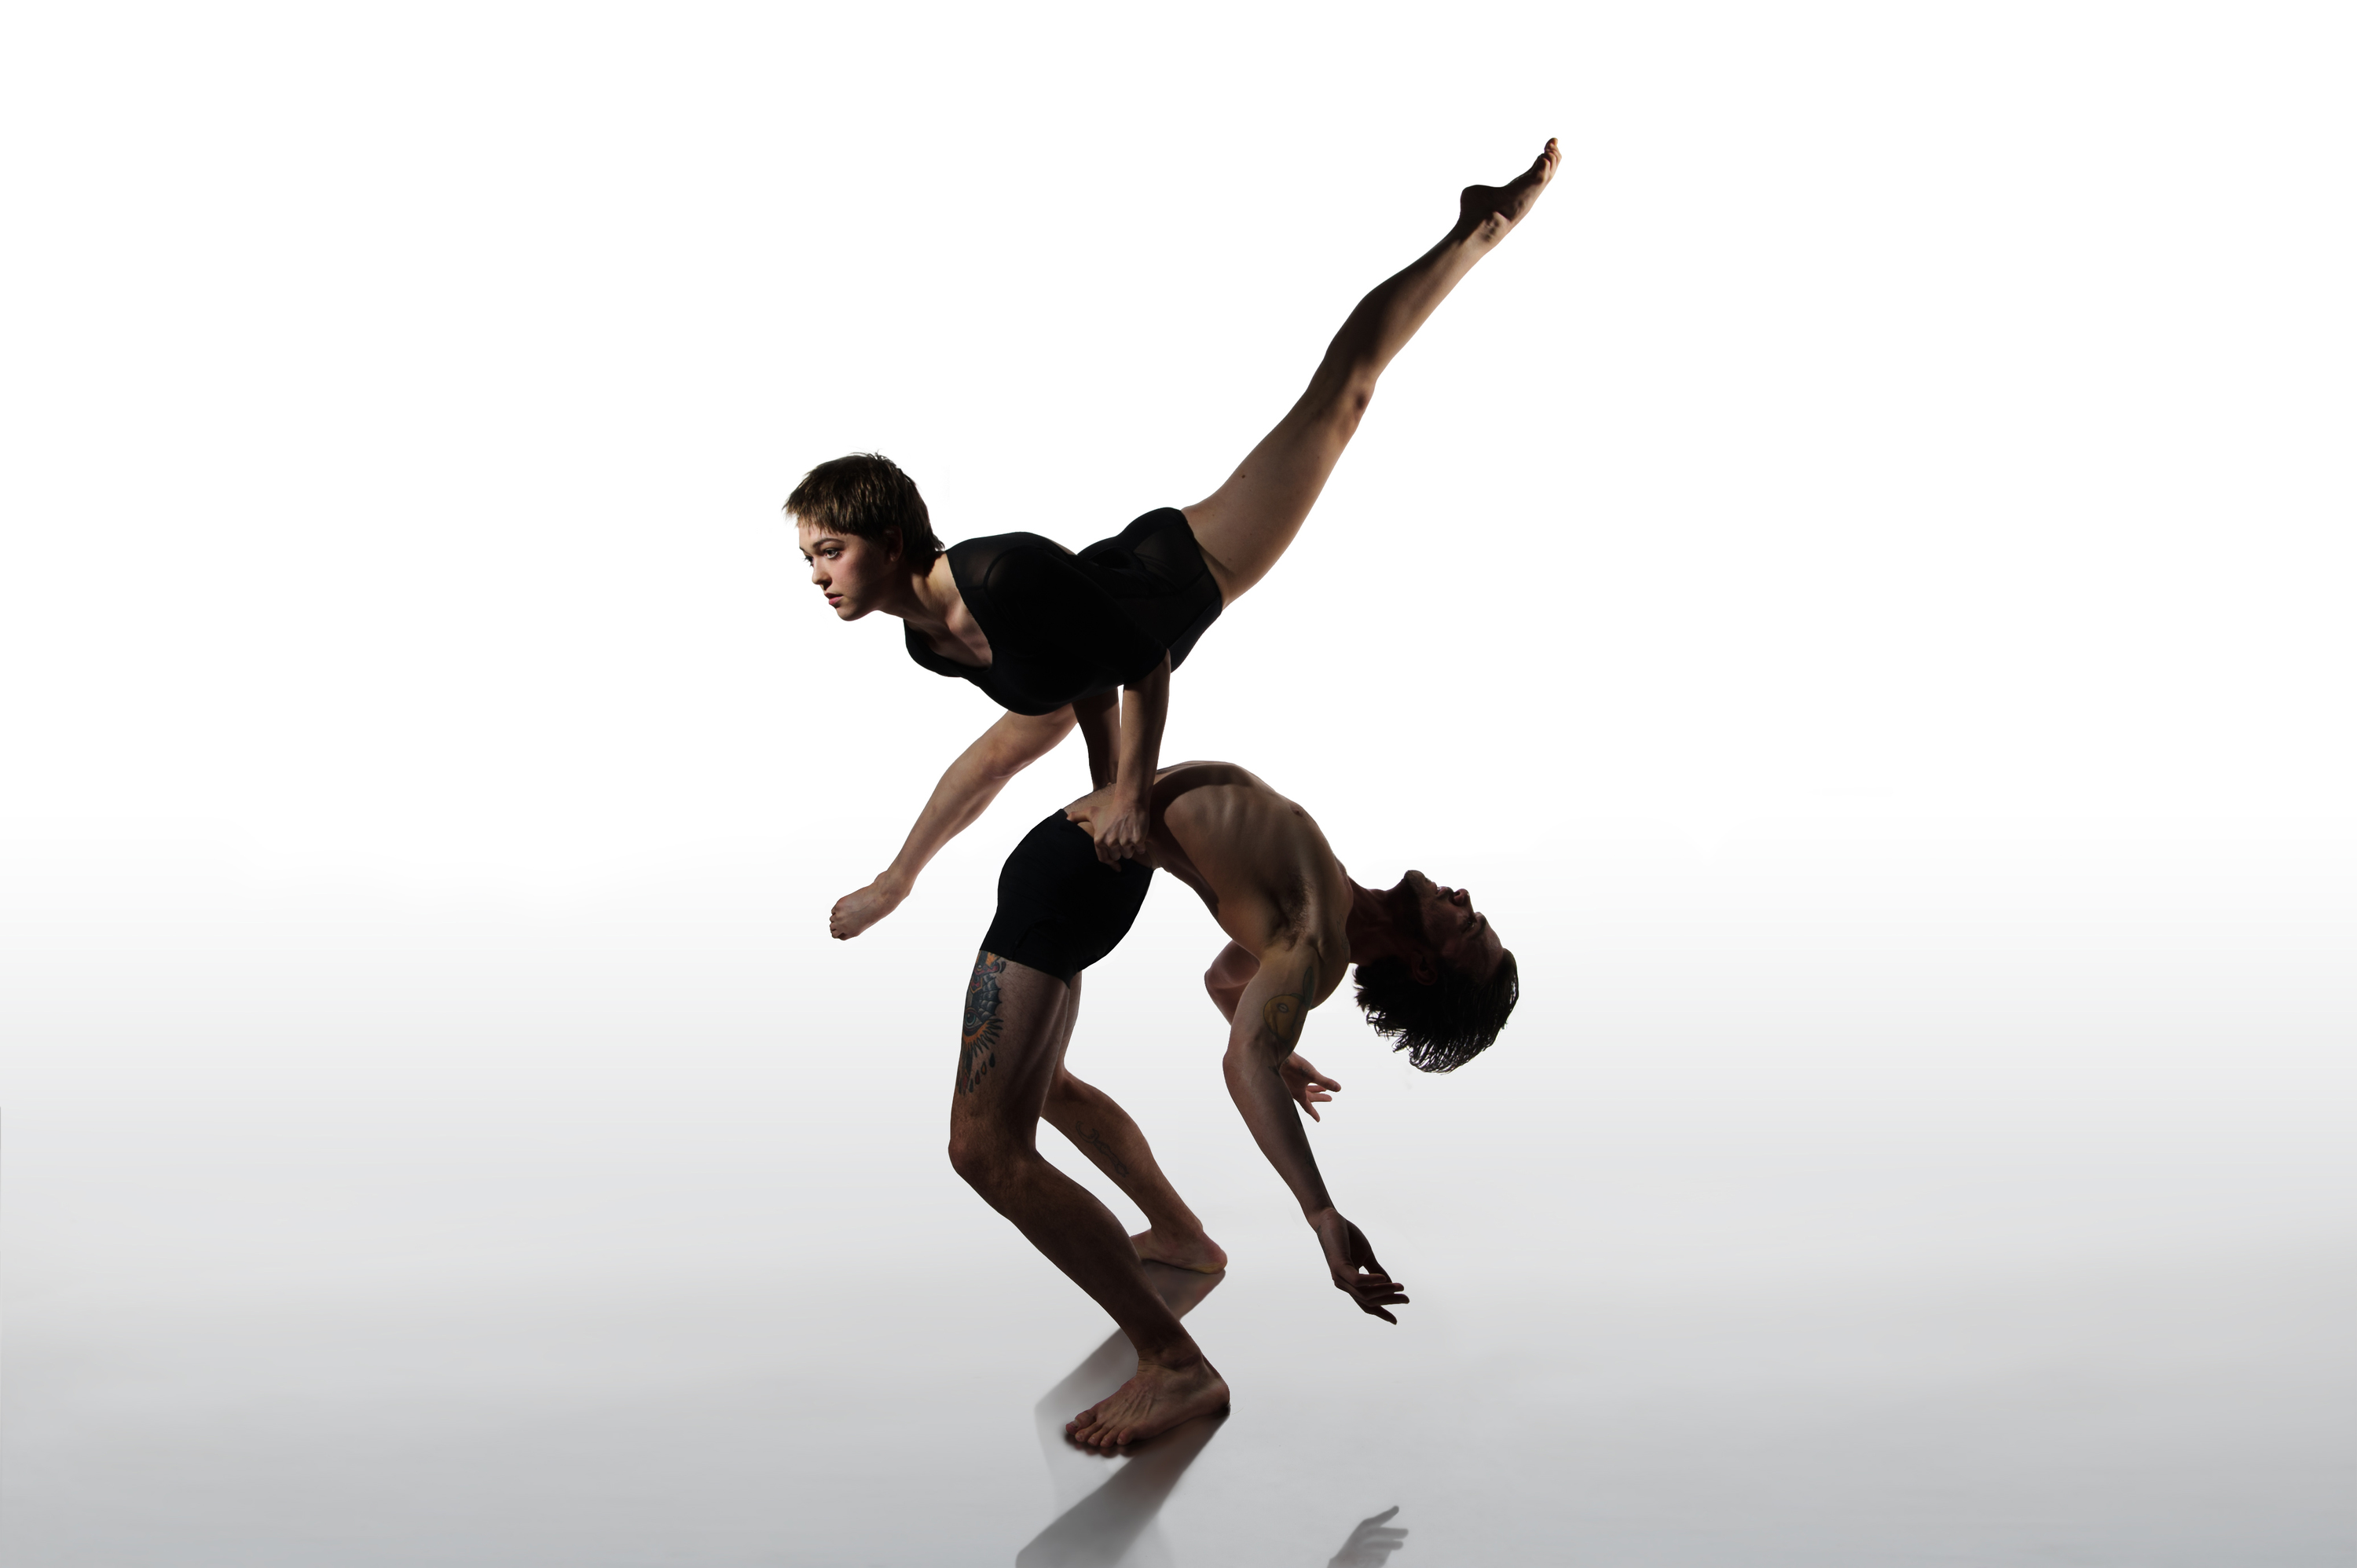 Two acrobats in performance